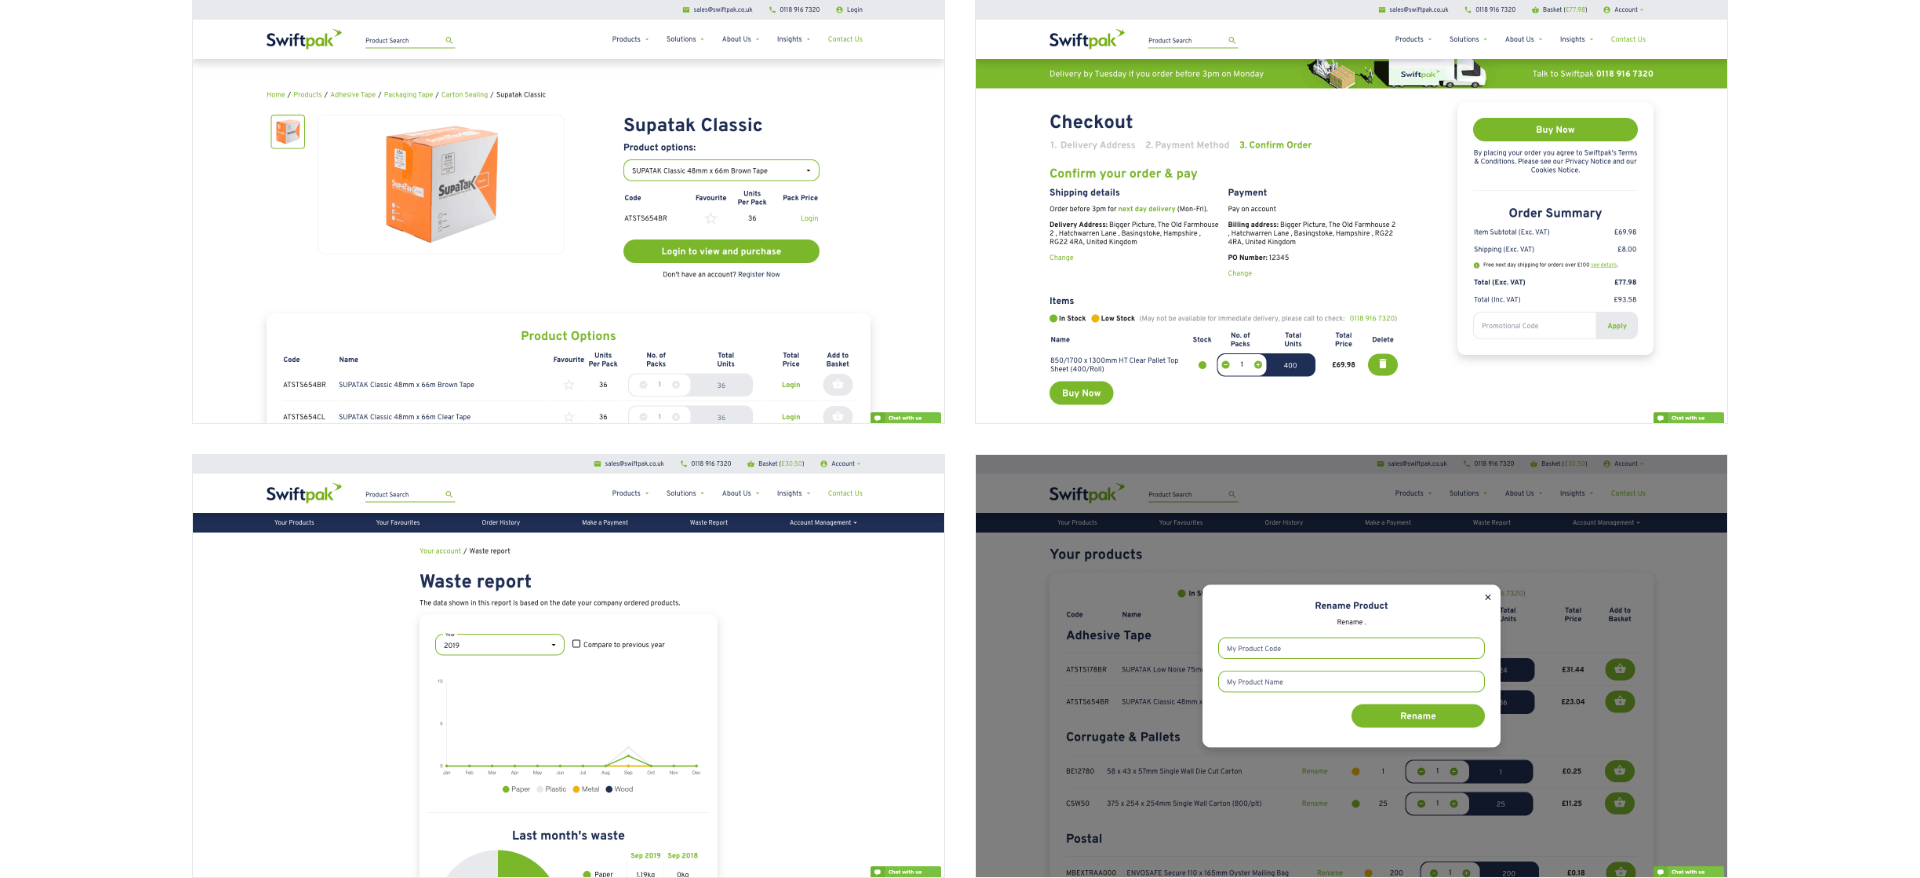 Swiftpak Checkout flow